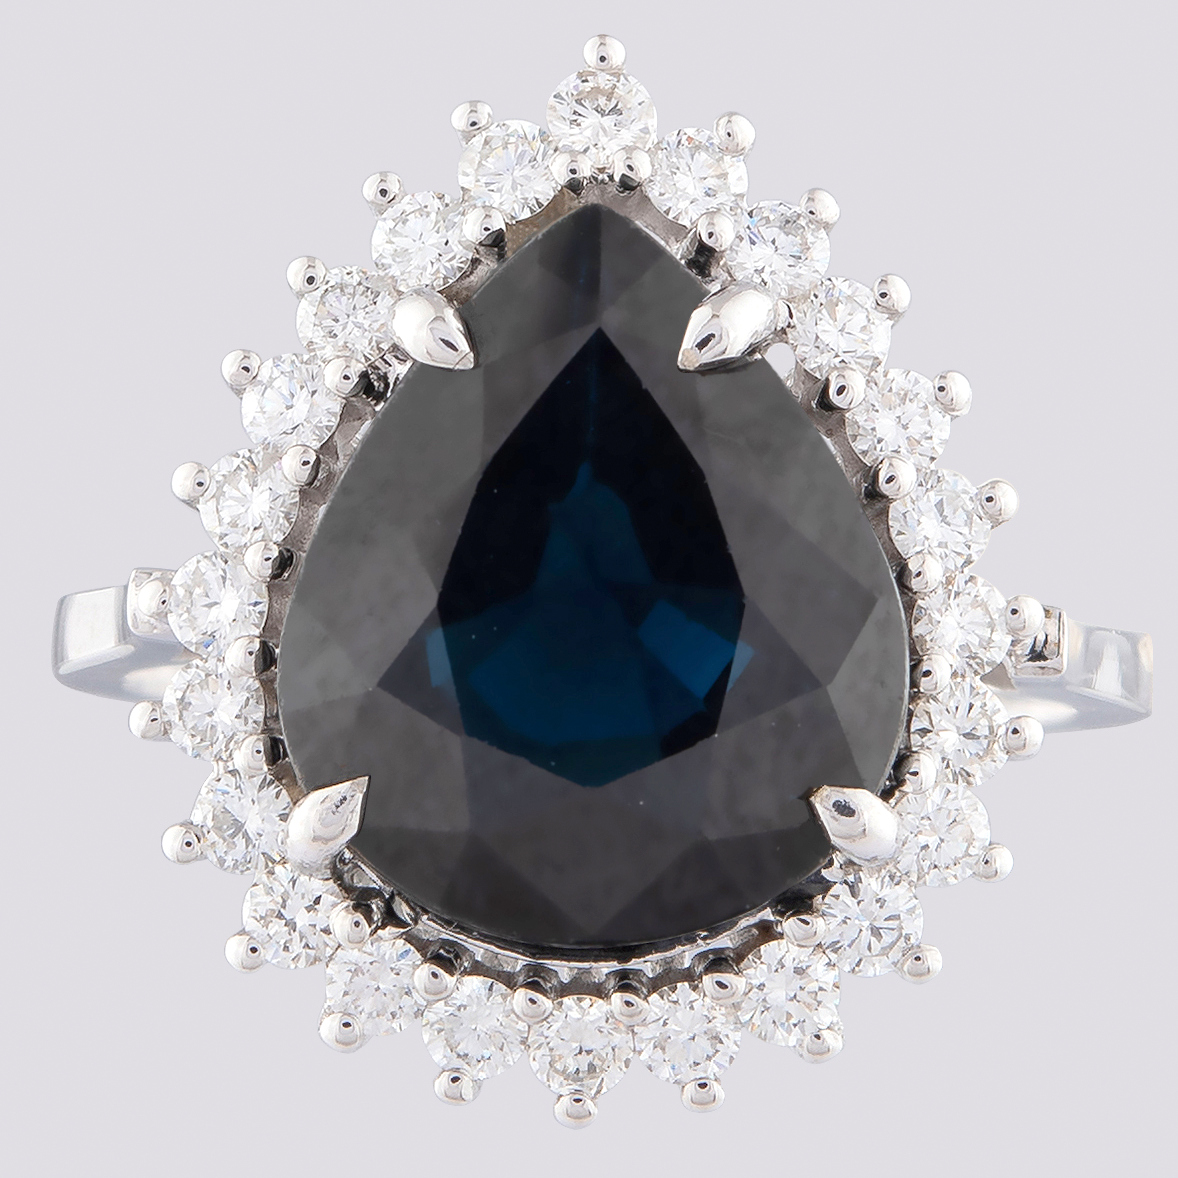 14K White Gold Cluster Ring - 5,75 Ct. Natural Sapphire - 0,60 Ct. Diamond - Image 4 of 4